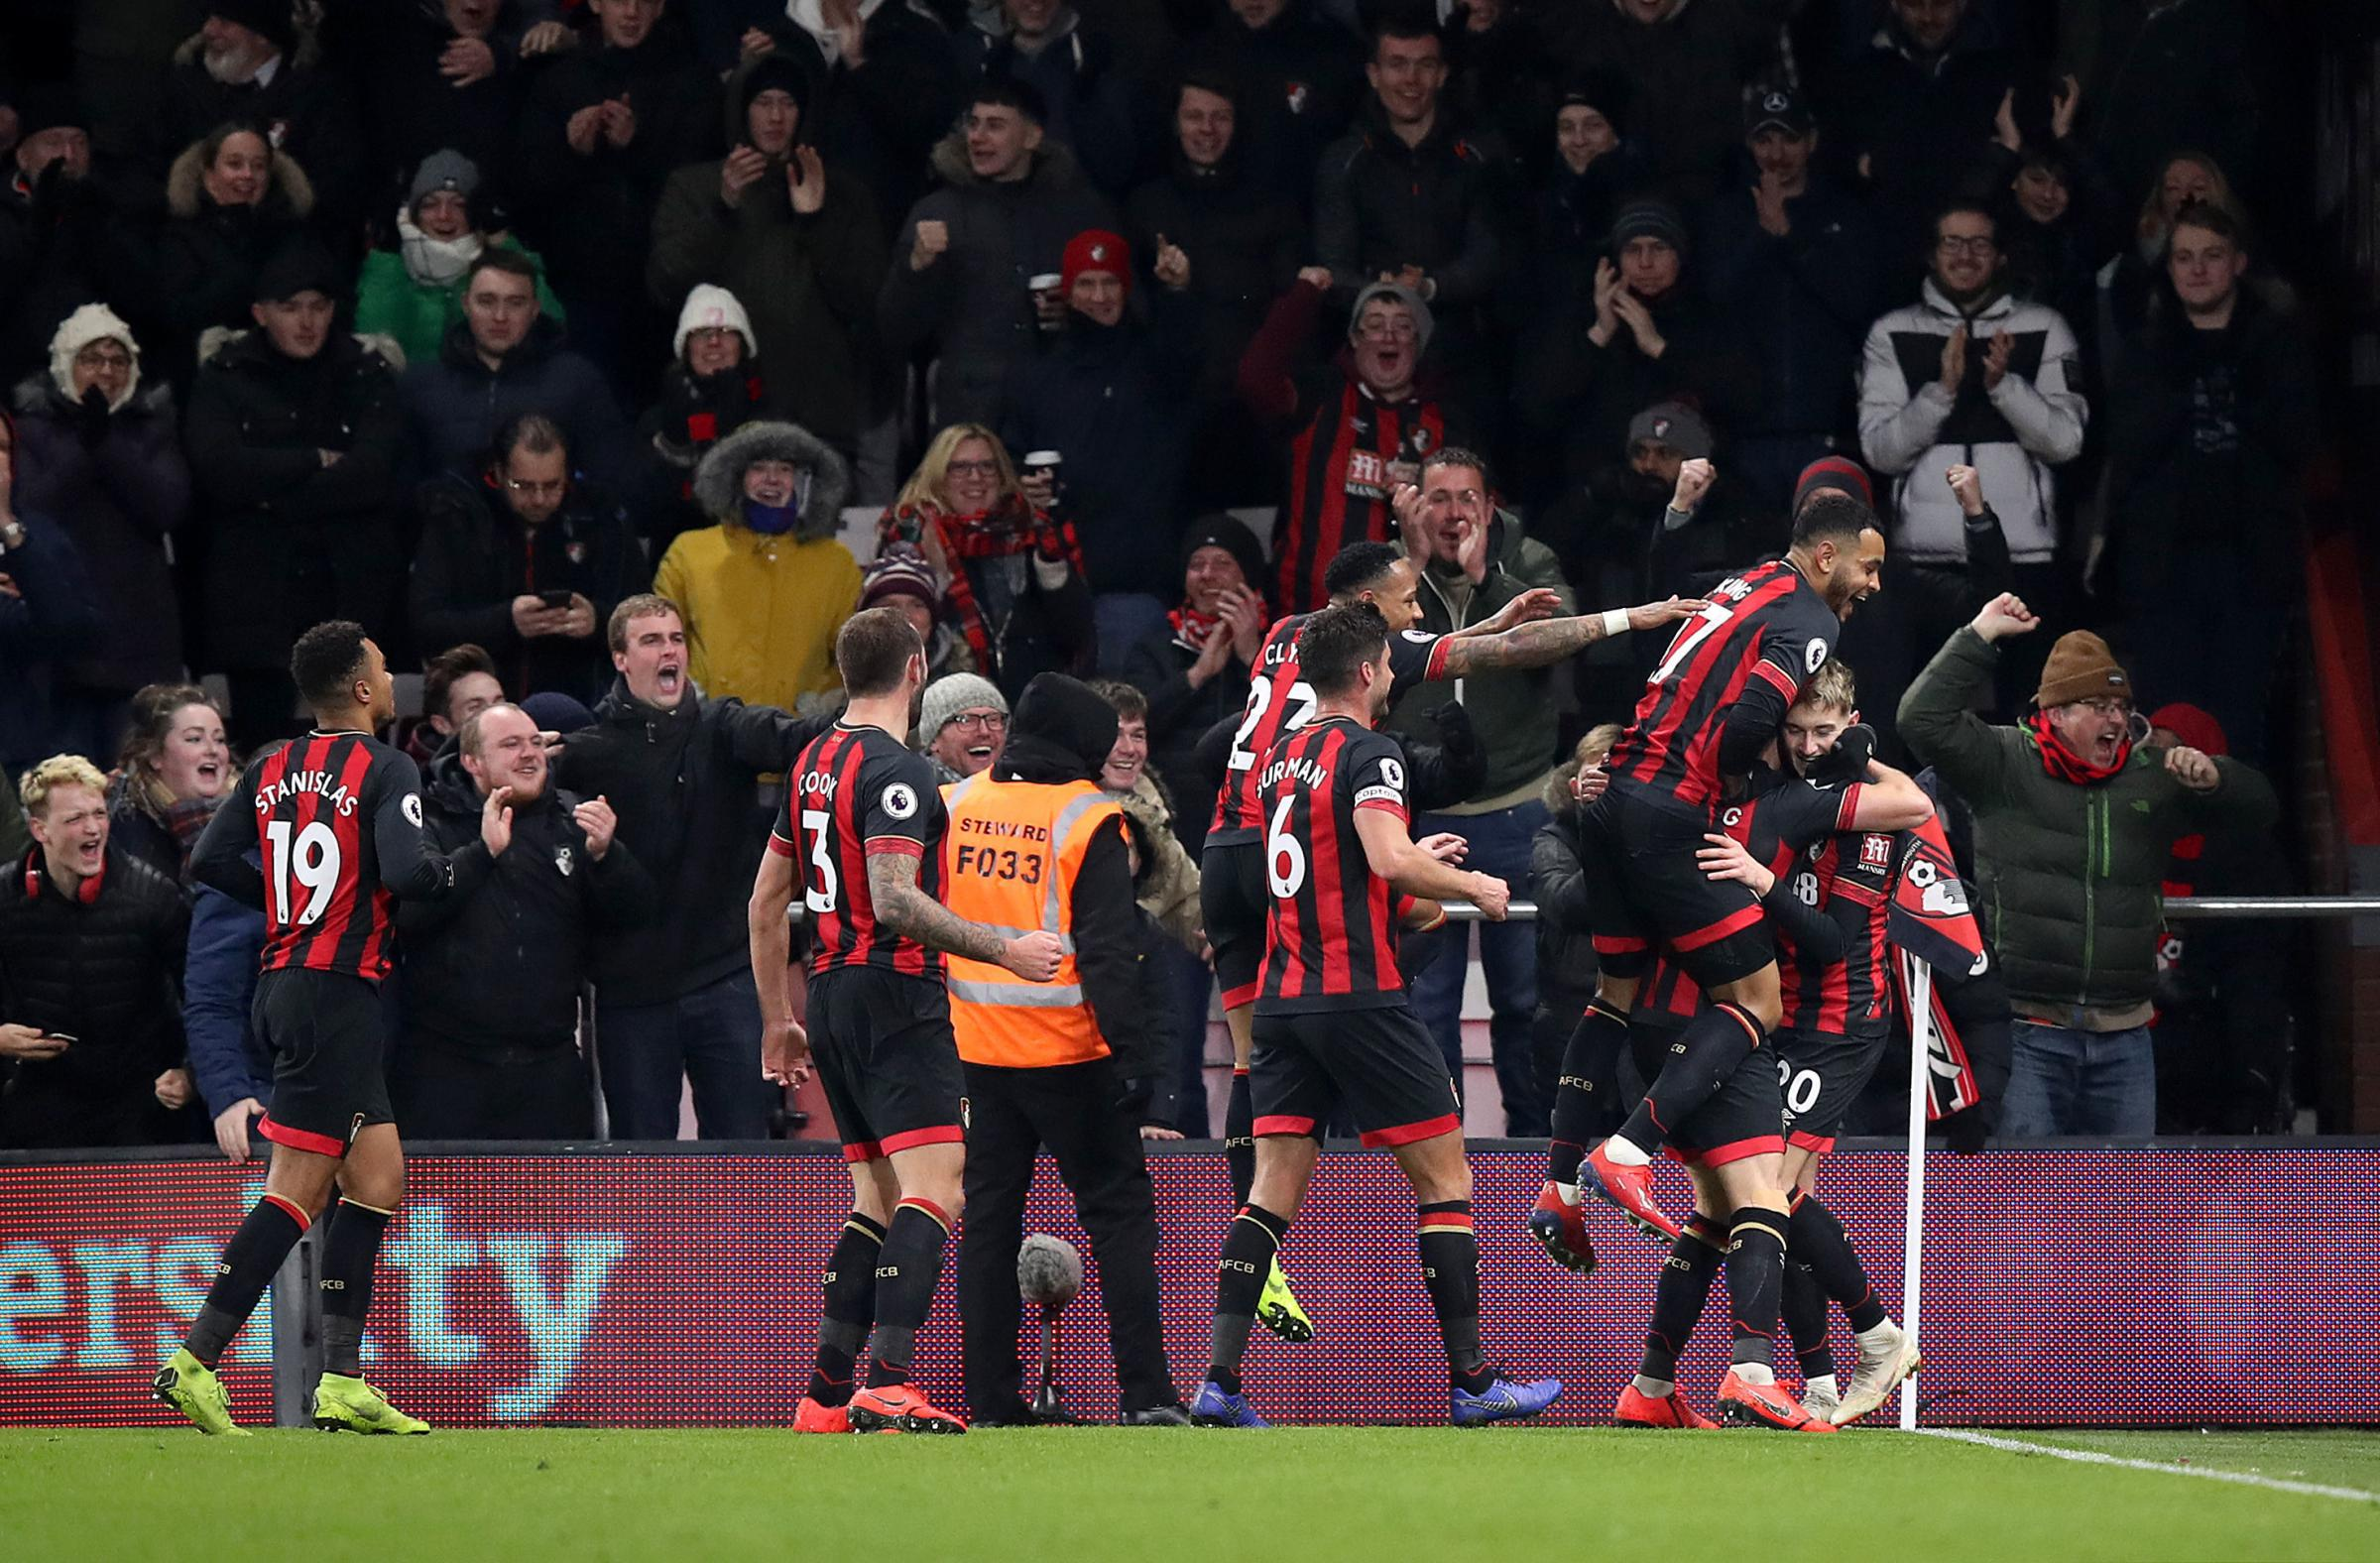 Bournemouth's David Brooks (right) celebrates scoring his side's second goal of the game against Chelsea. Picture: Andrew Matthews/ PA Wire